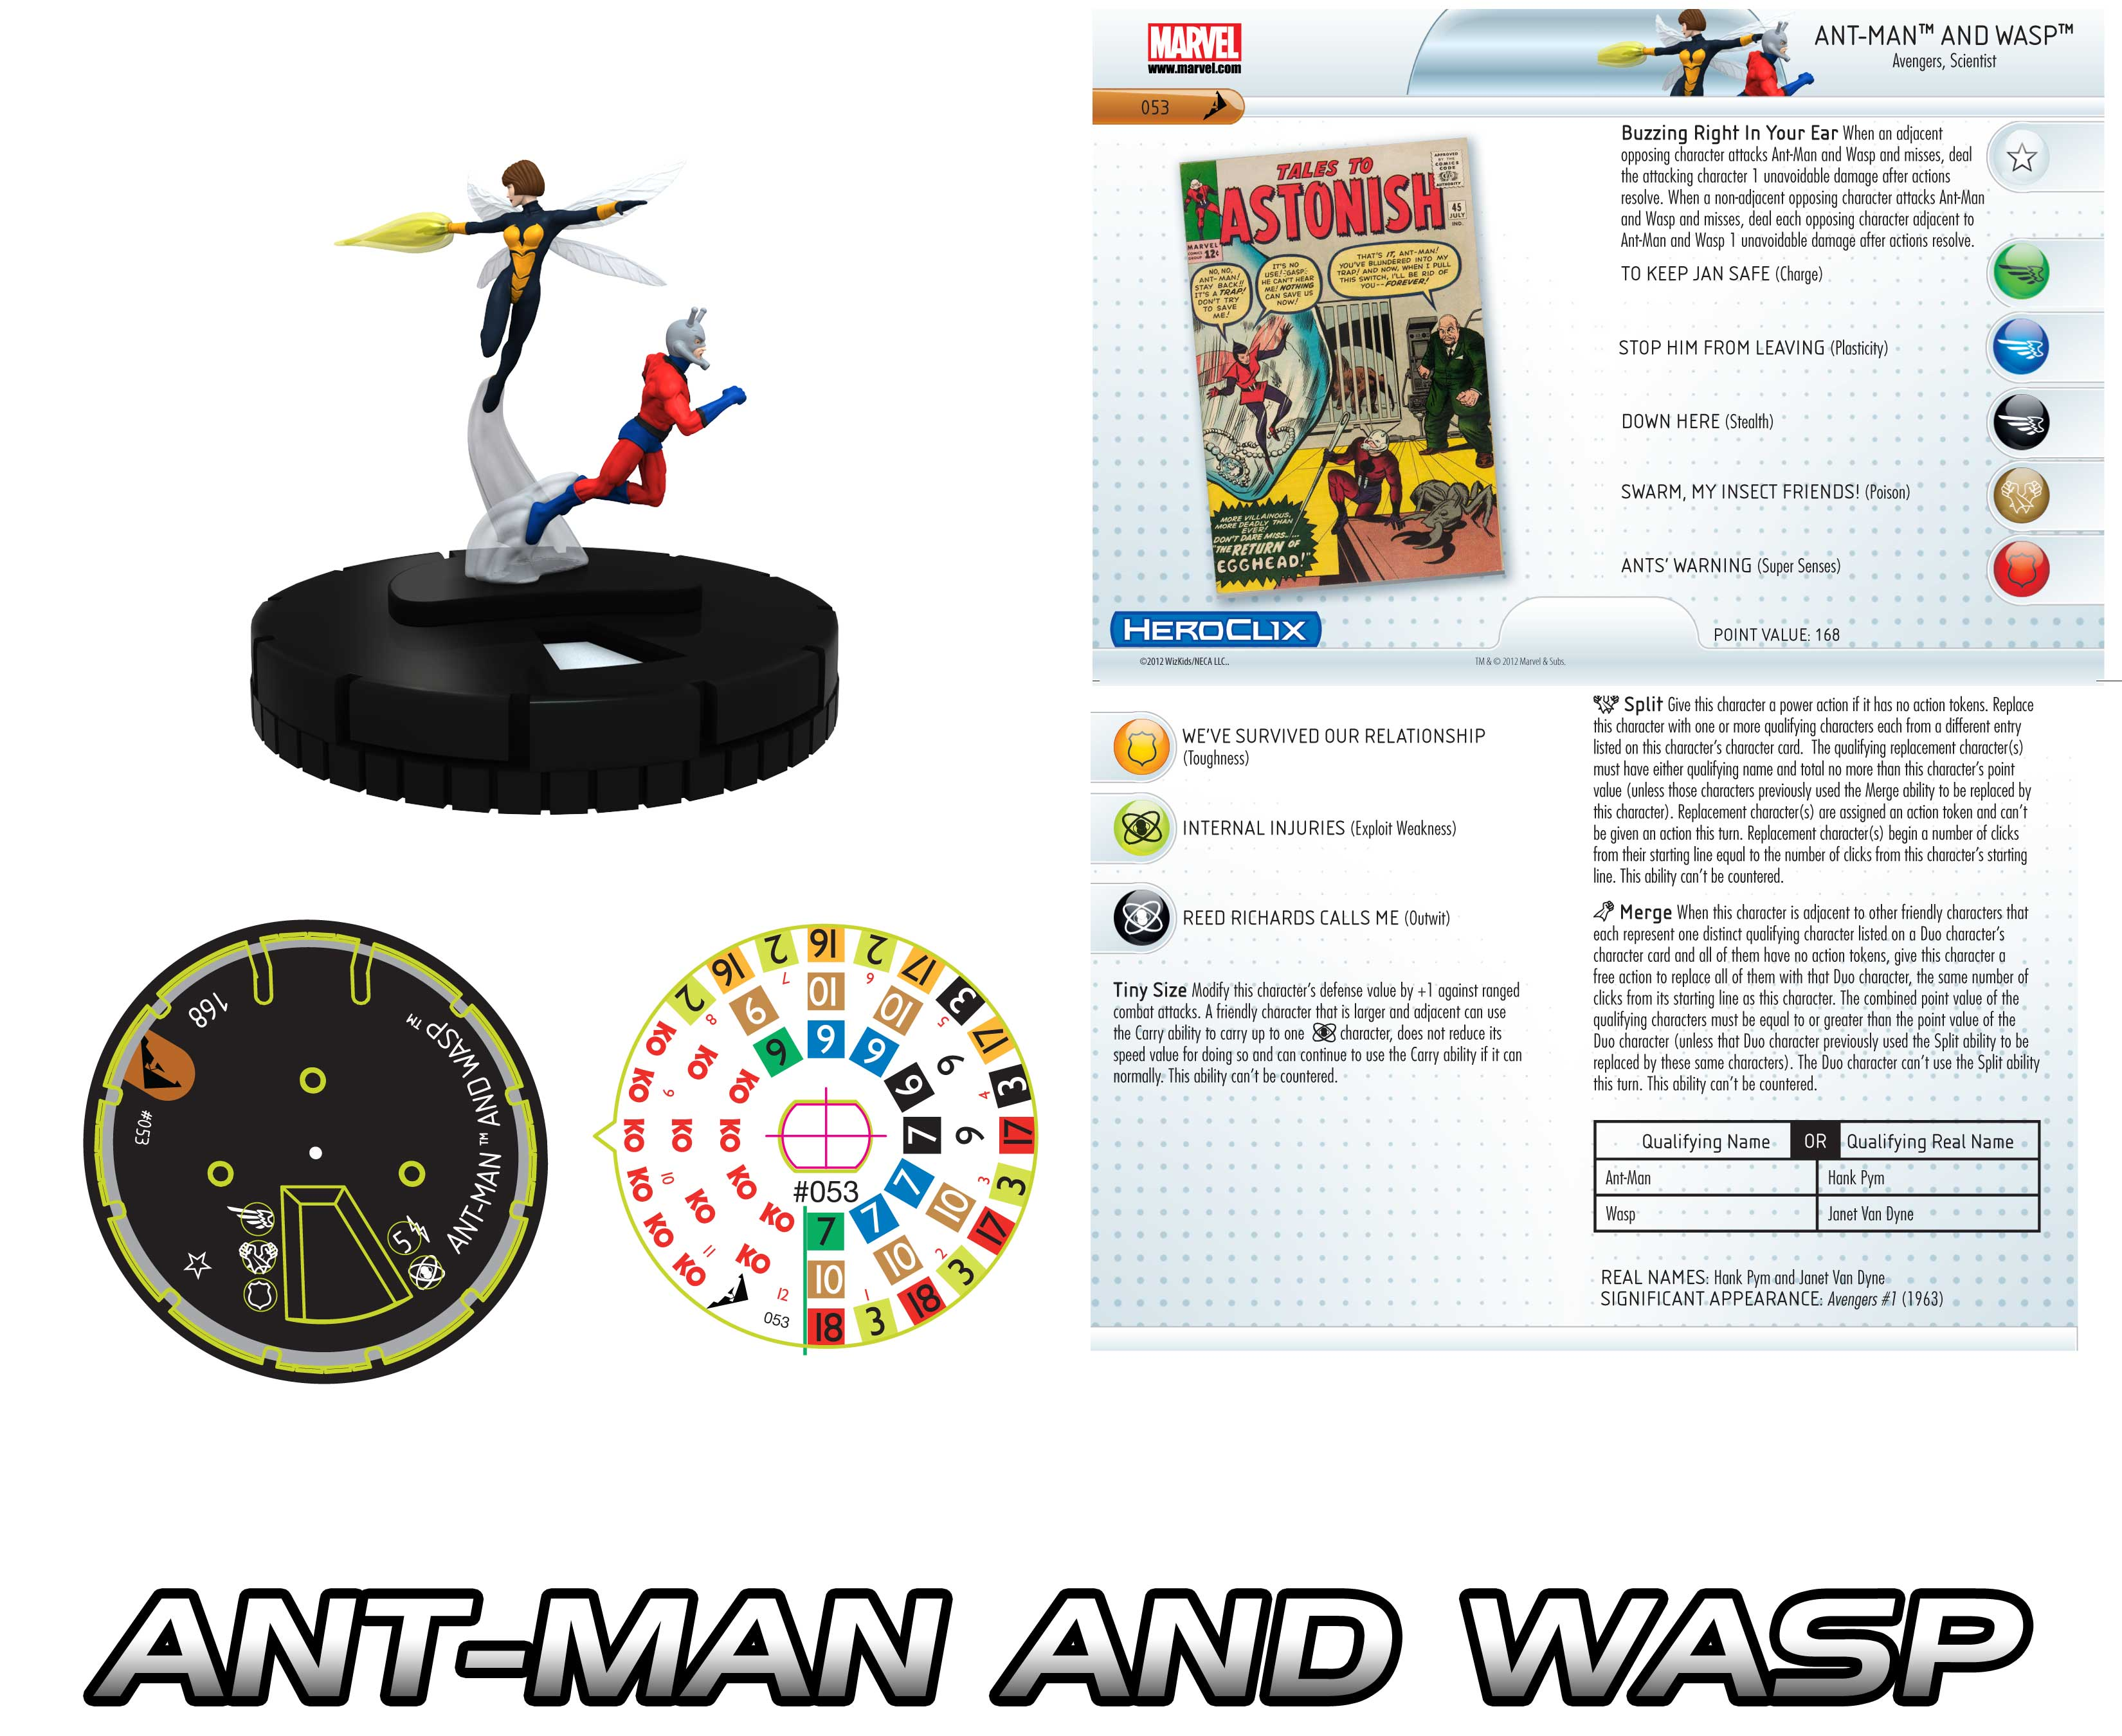 Heroclix Ant-Man and Wasp